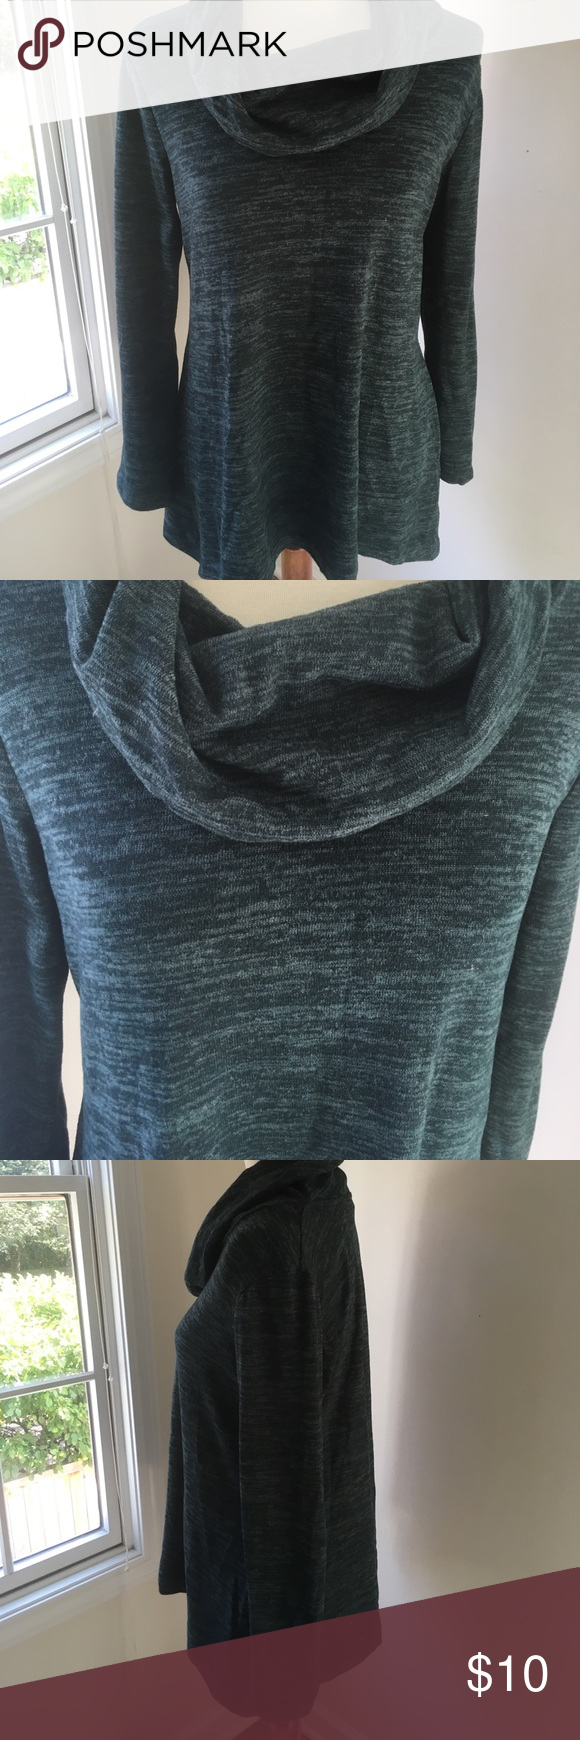 Jones New York cowl neck sweater size S Cute and comfy deep moss ...